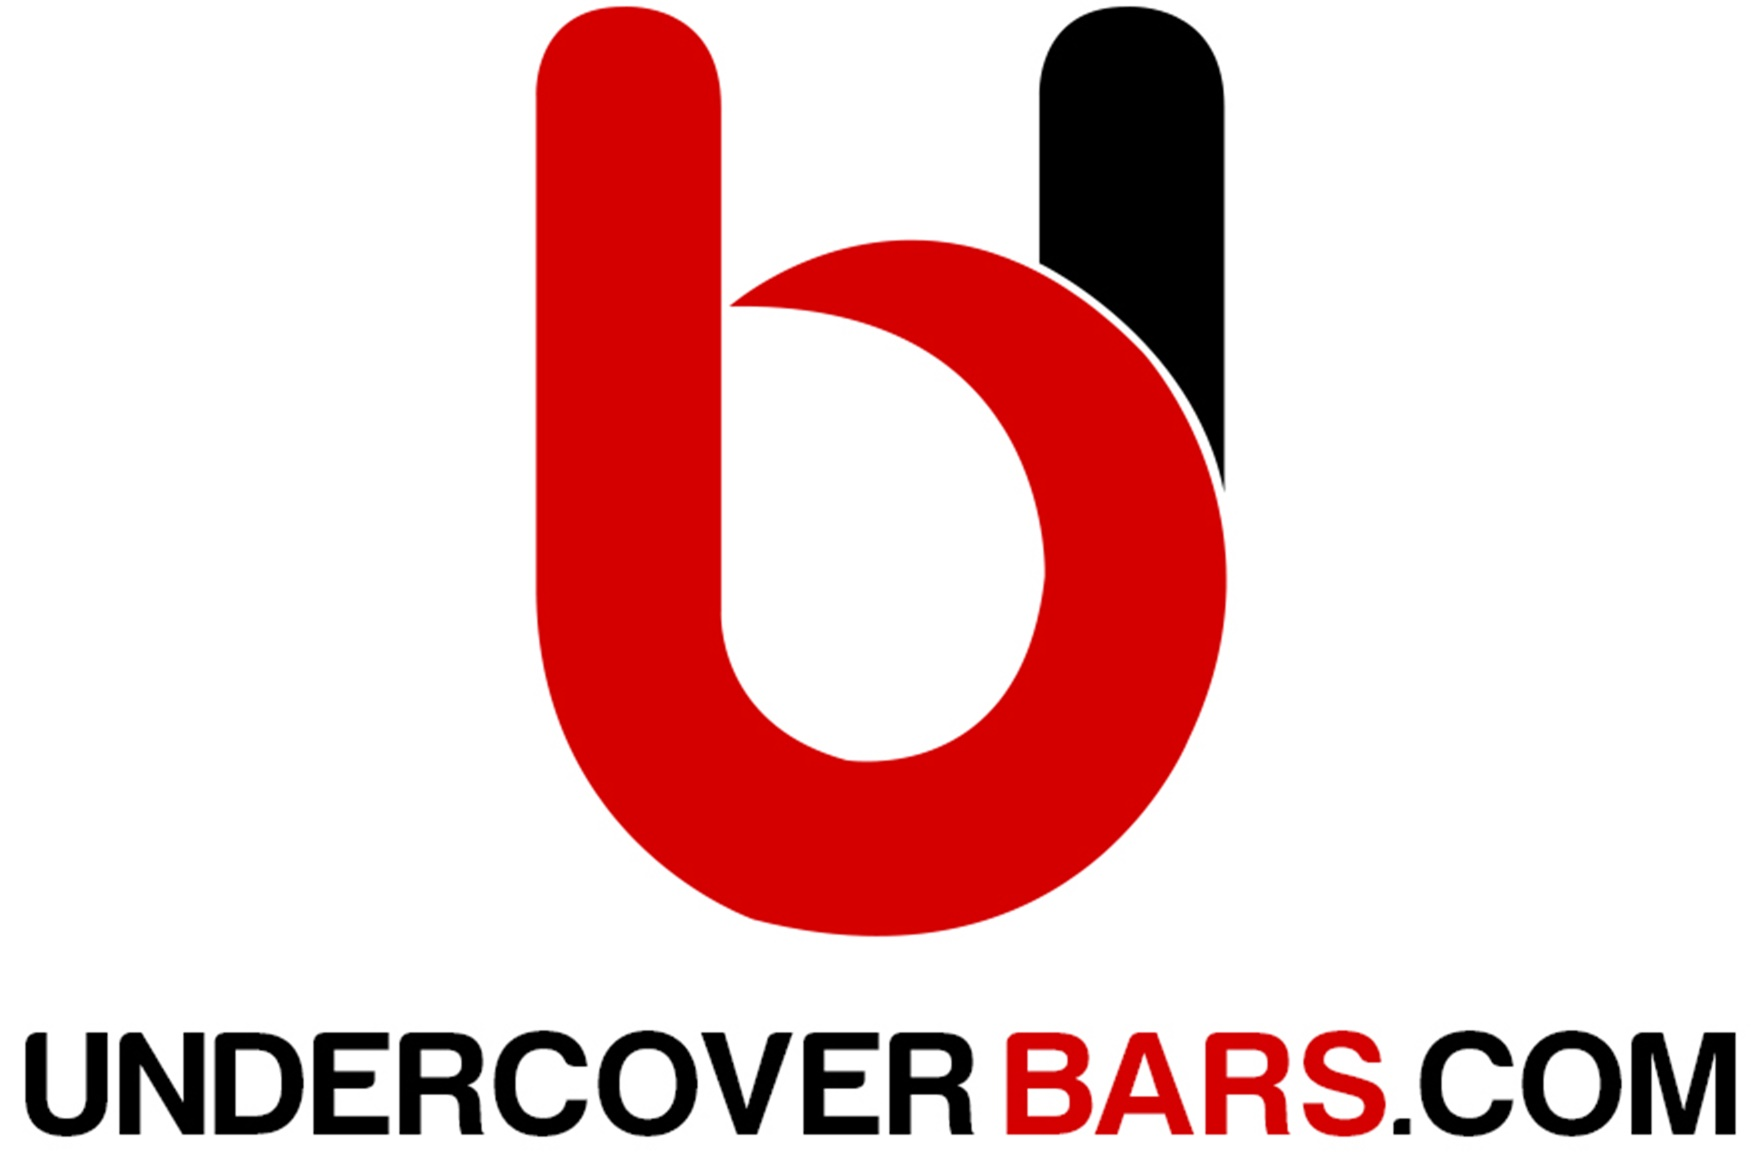 Undercover Bars